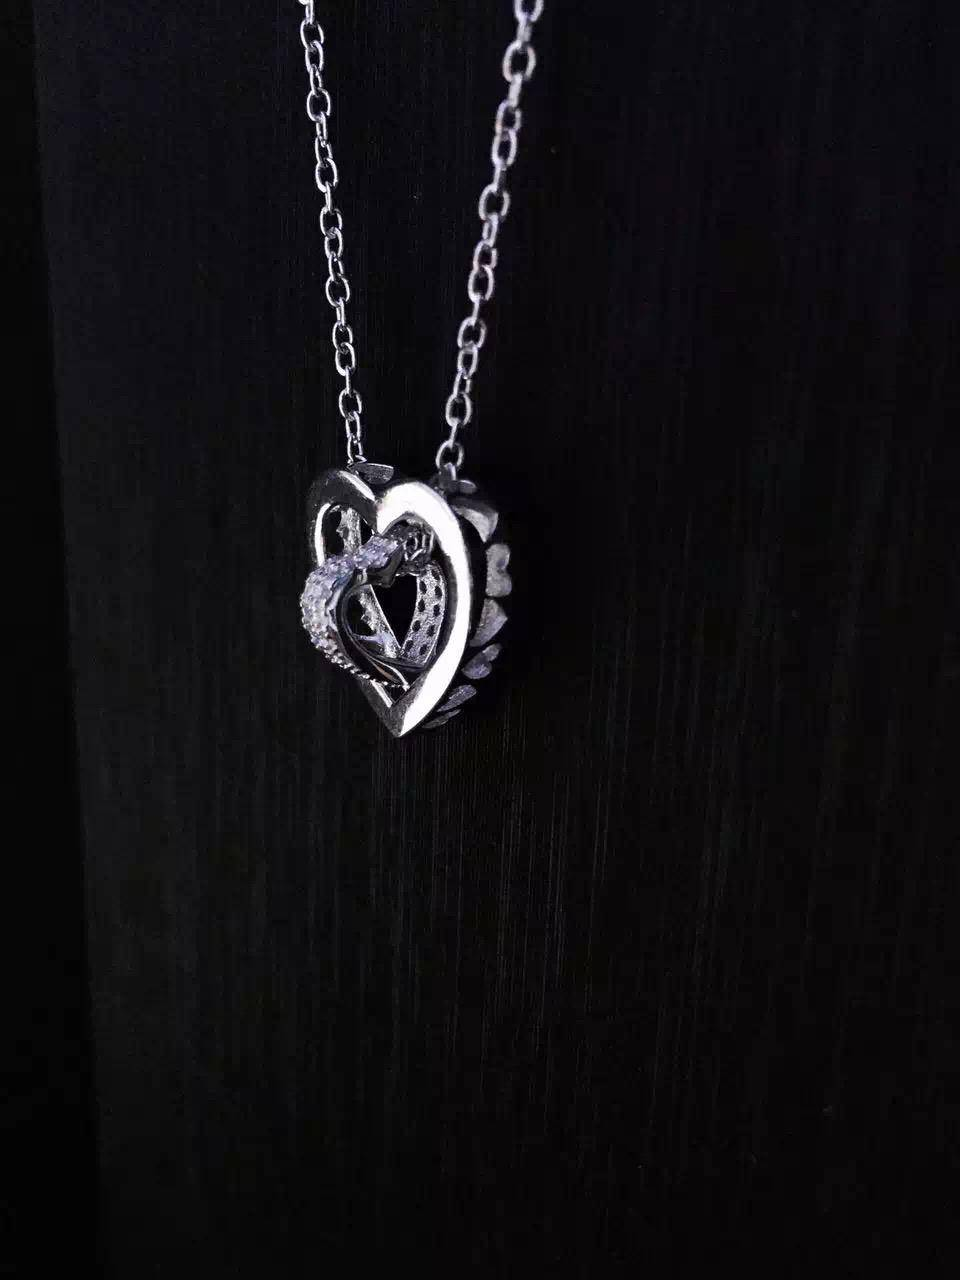 FOR FREE SHIPPING OEM FACTORY NEFFLY JEWELERY double peach heart necklace, 925 silver with platinum